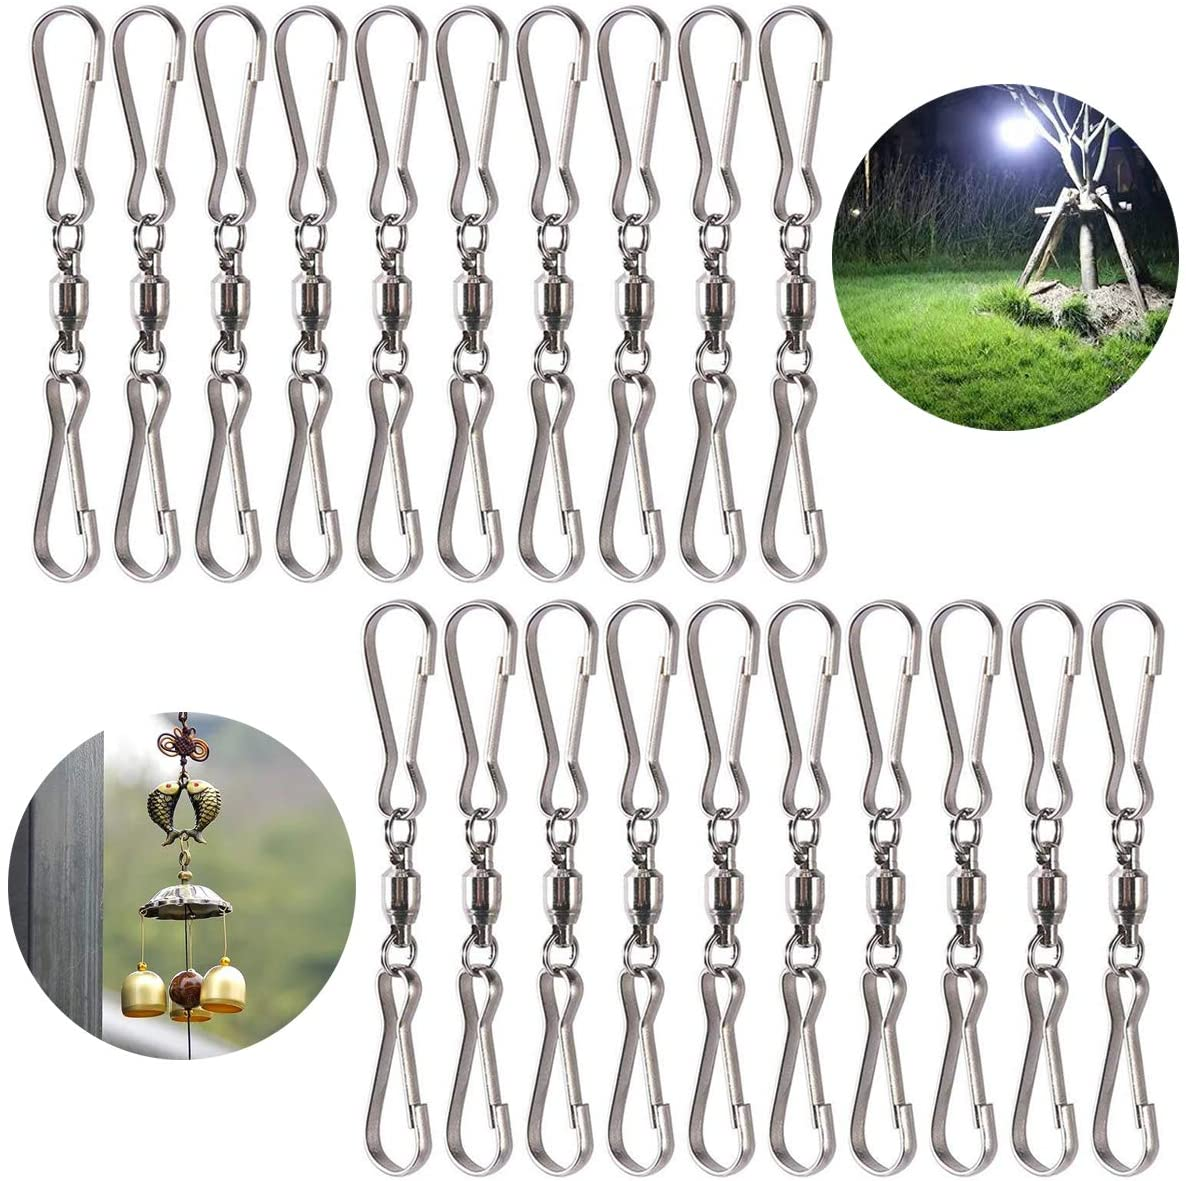 Lainrrew 20 Pcs Swivel Hooks Clips, Durable Spinning Dual Clip for Hanging Wind Spinners Wind Chimes Bird Feeder Party Supply